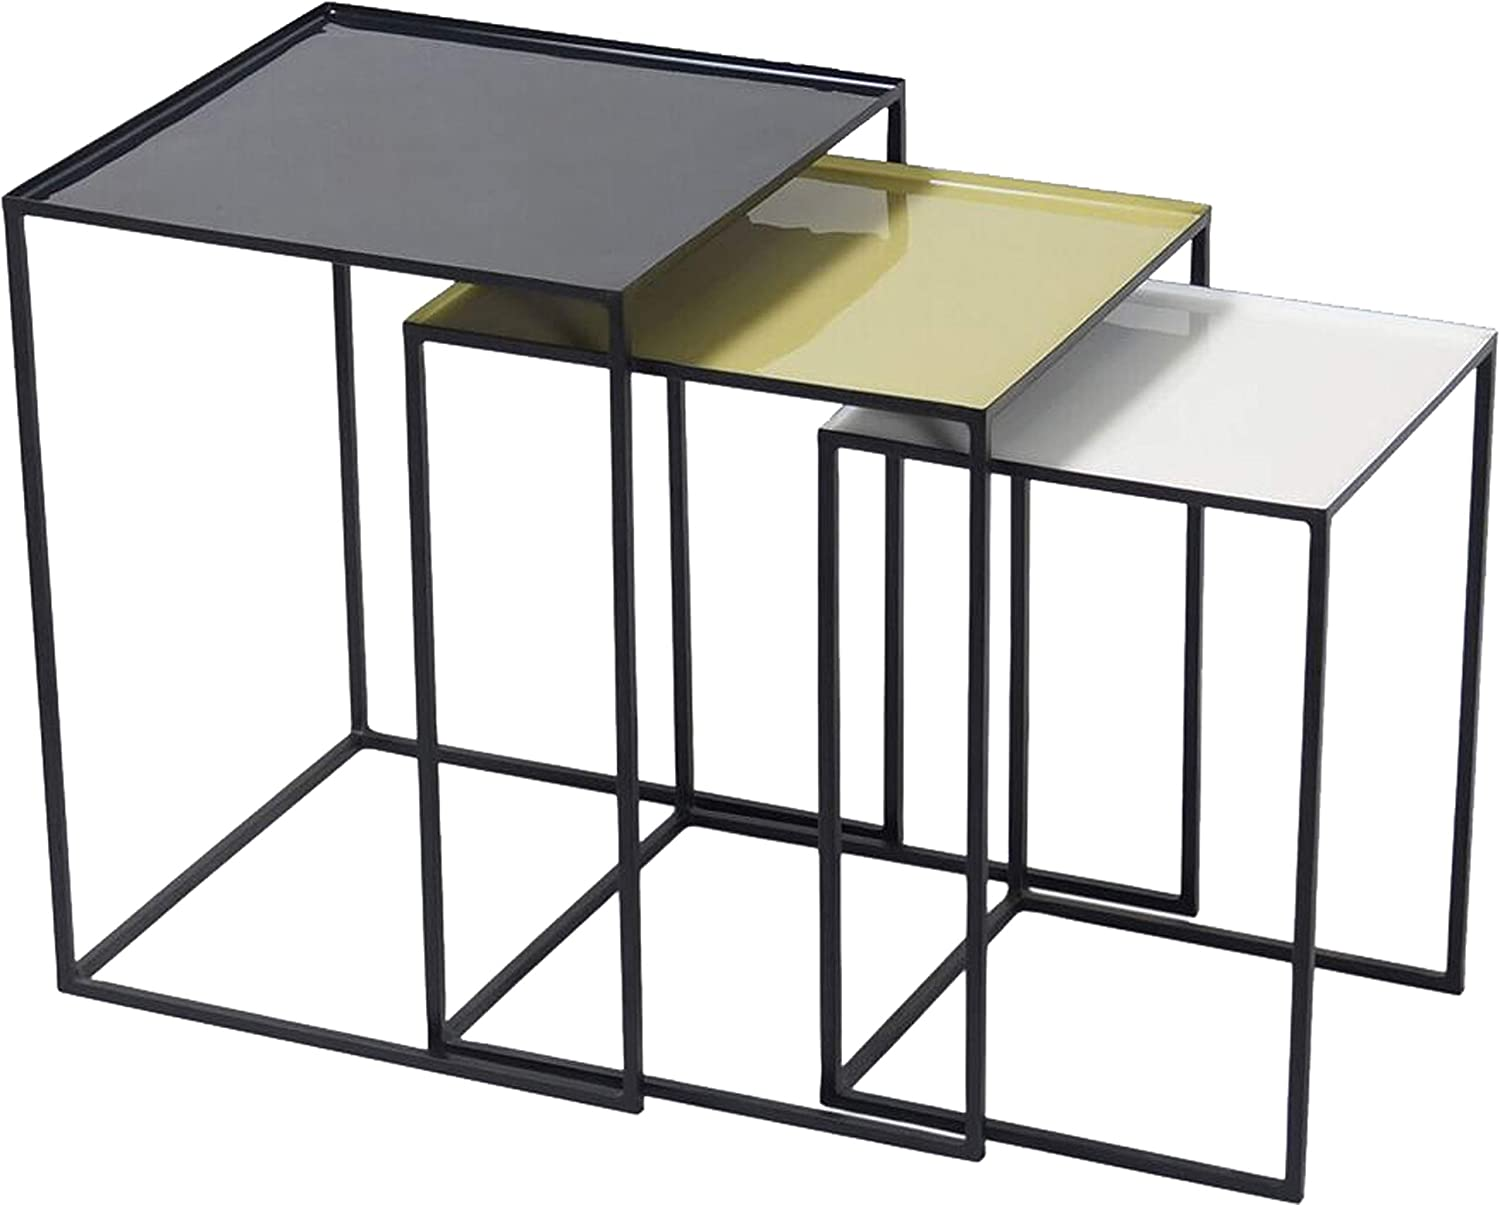 Renwil Inc TA215 Arrie - 21  Medium Accent Table (Set of 3), Black Enamel Finish